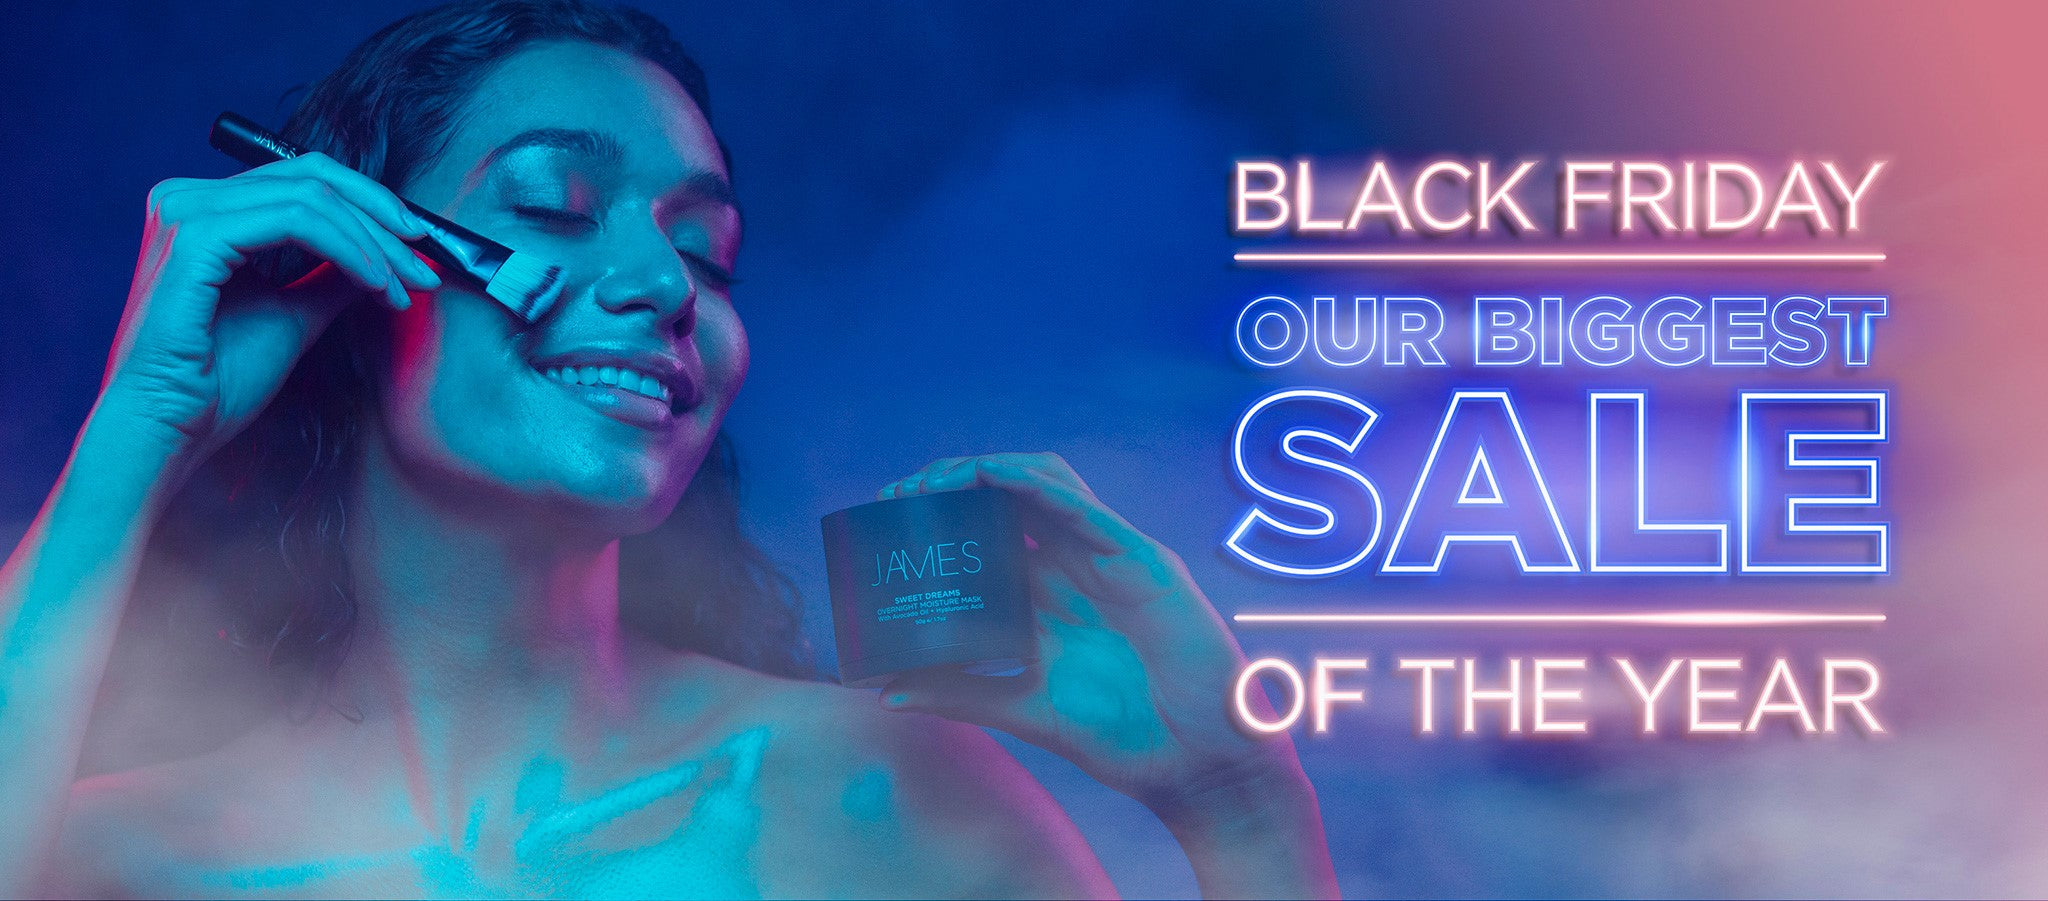 Black Friday - Our biggest sale of the year